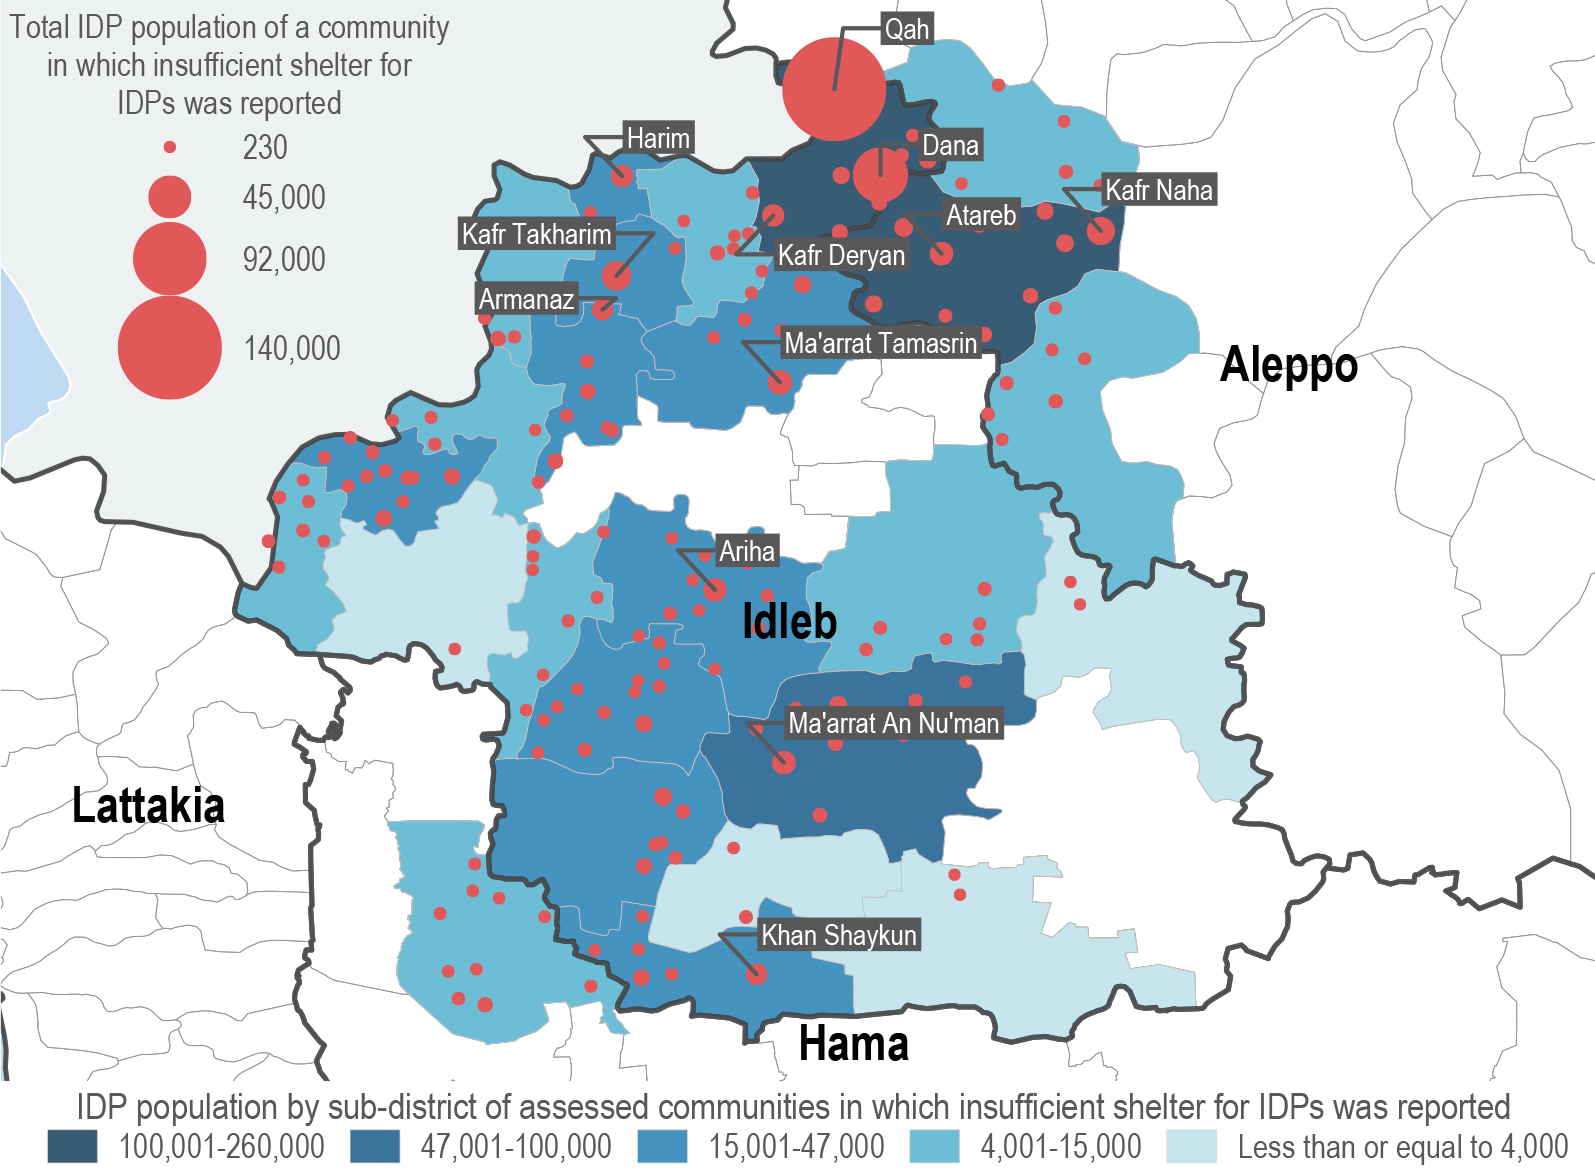 REACH found that almost 20 percent of the displaced people live in overcrowded or unsuitable shelters. The graph maps the location of communities where insufficient shelter was reported.